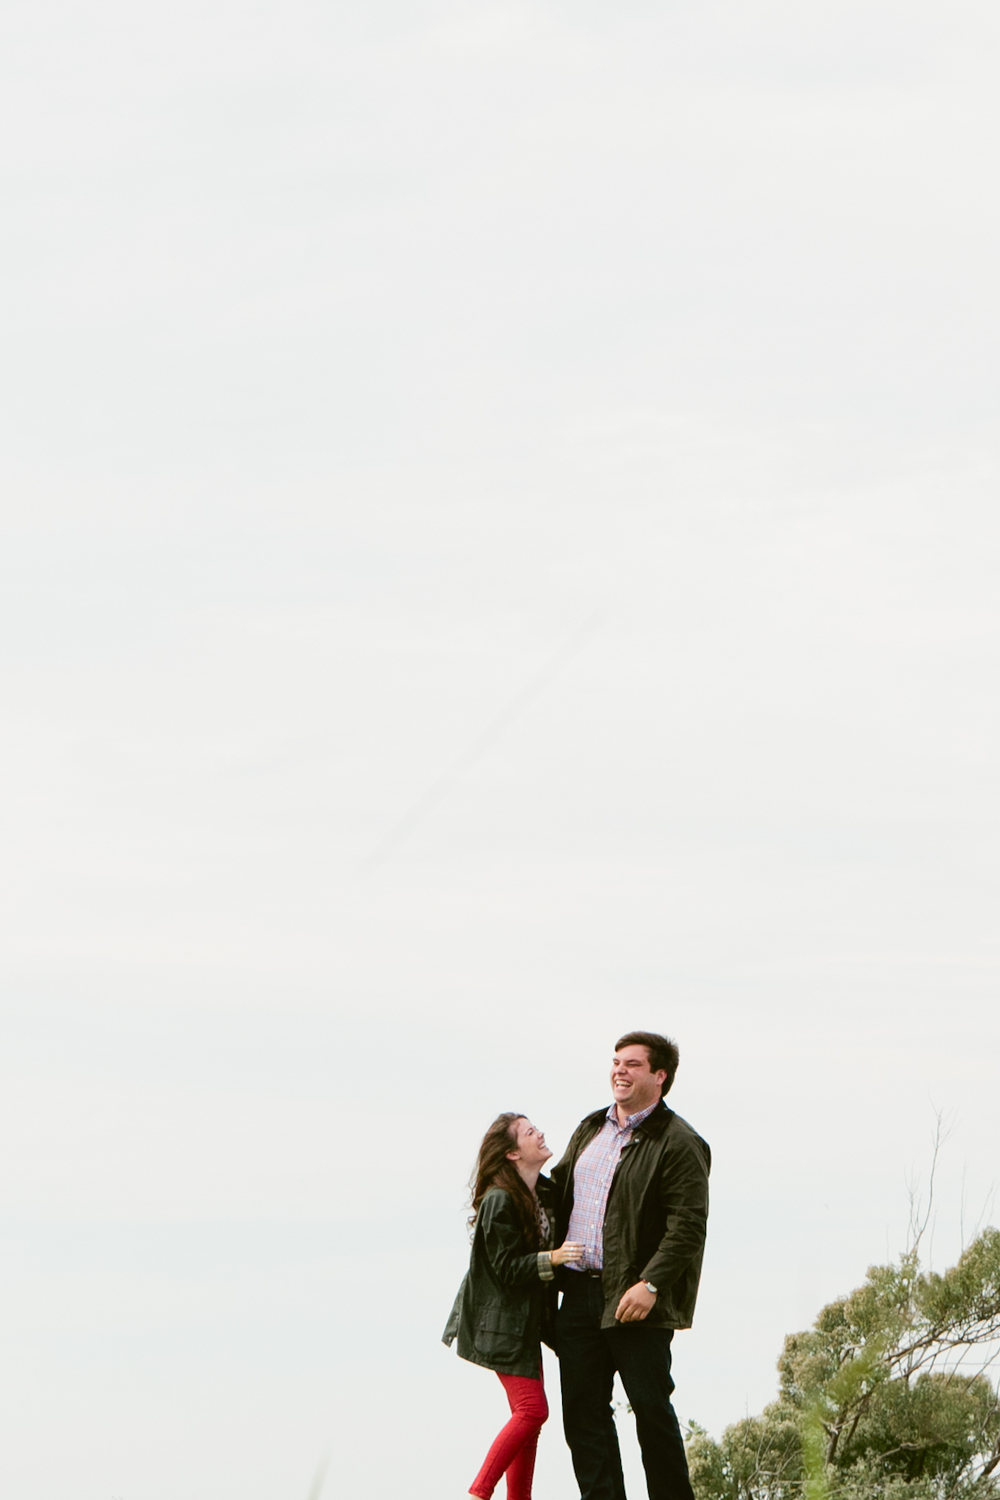 Tampa-Engagement-Photographer-Kathryn-McCrary-Photography-Proposal11.jpg